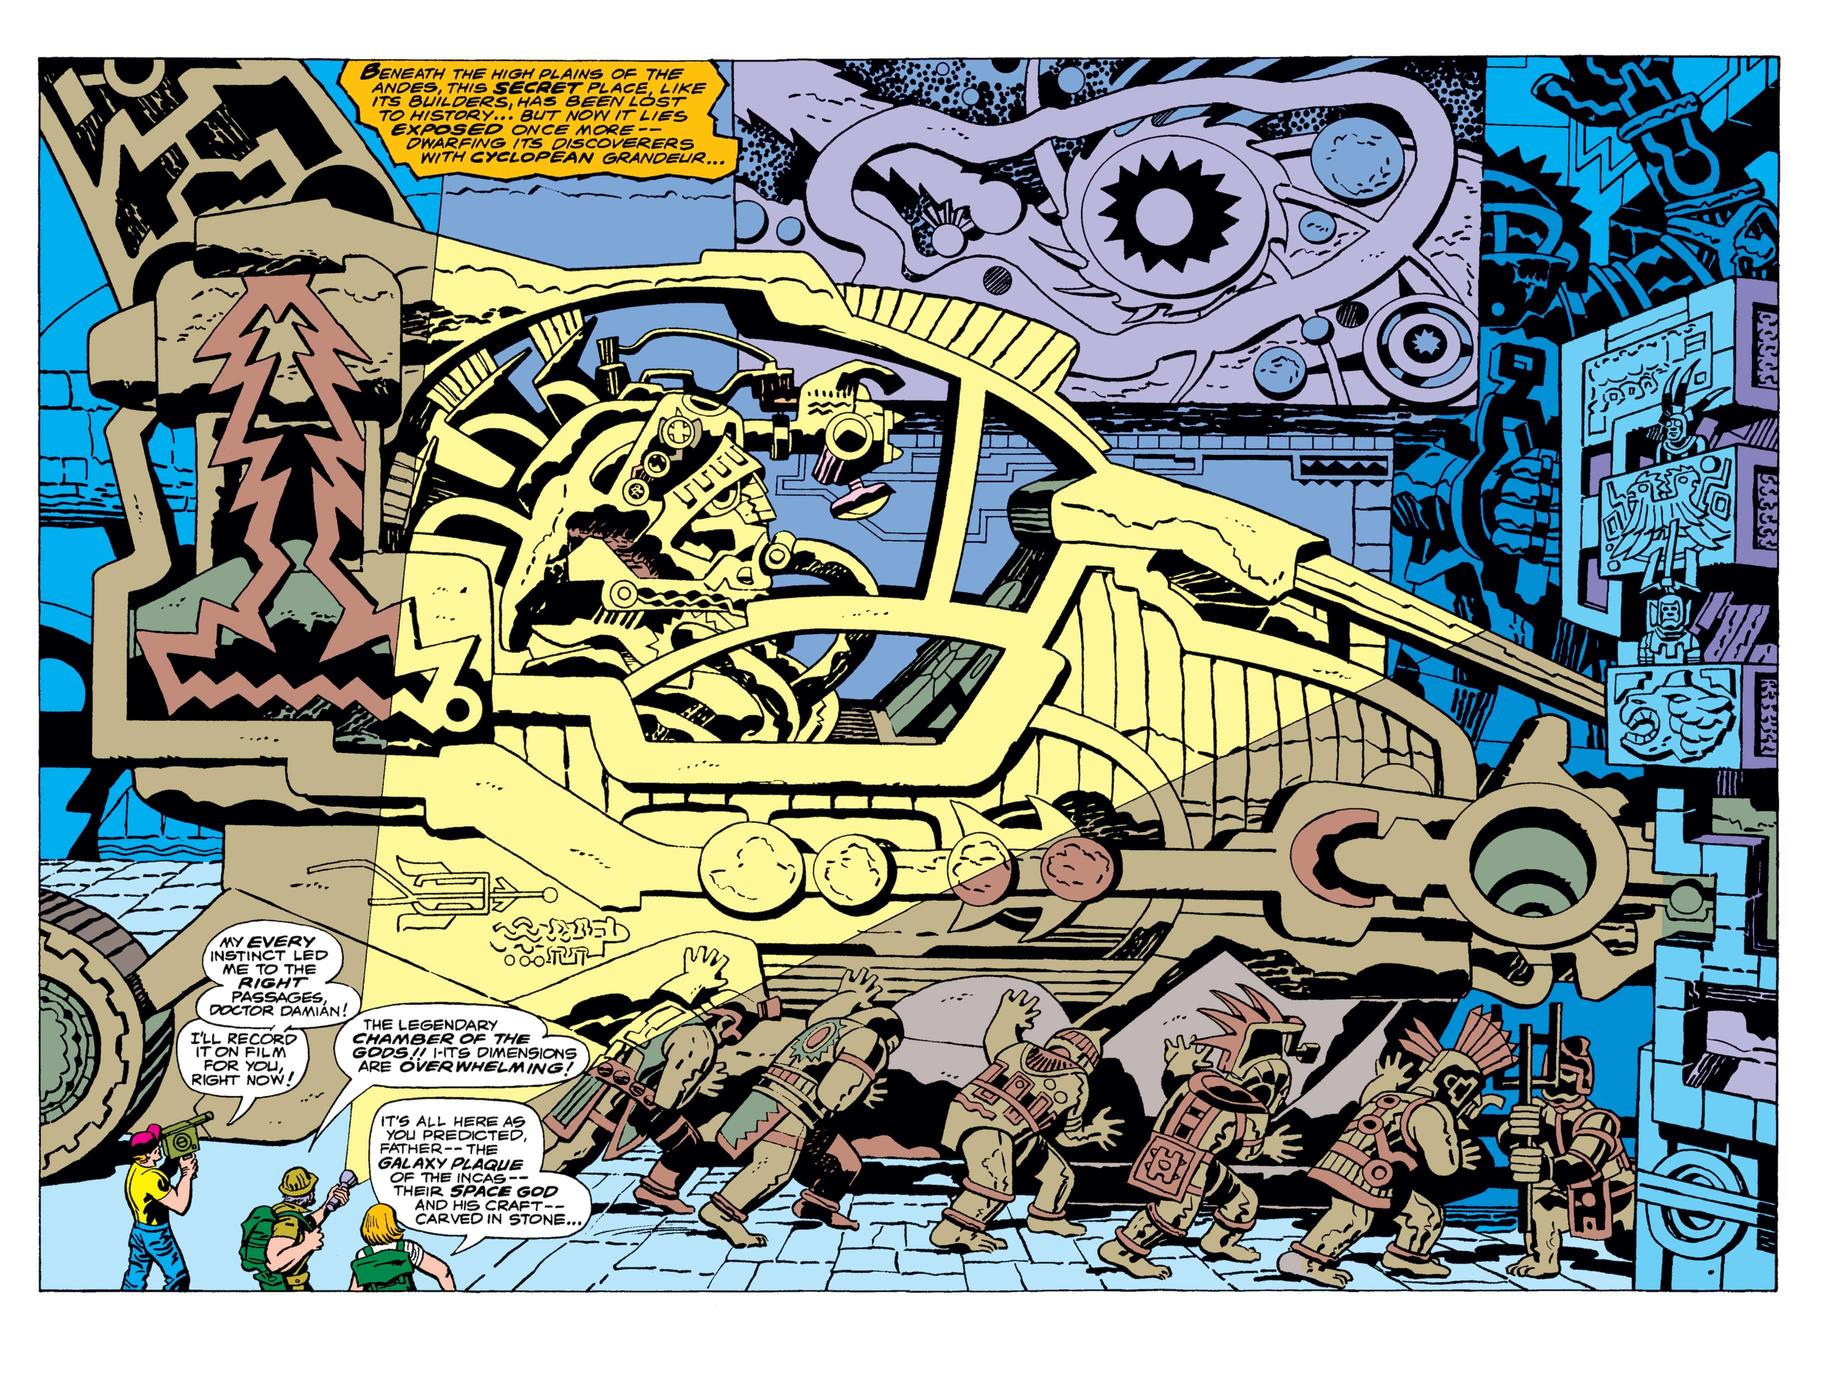 ETERNALS (1976) #1 interior by Jack Kirby